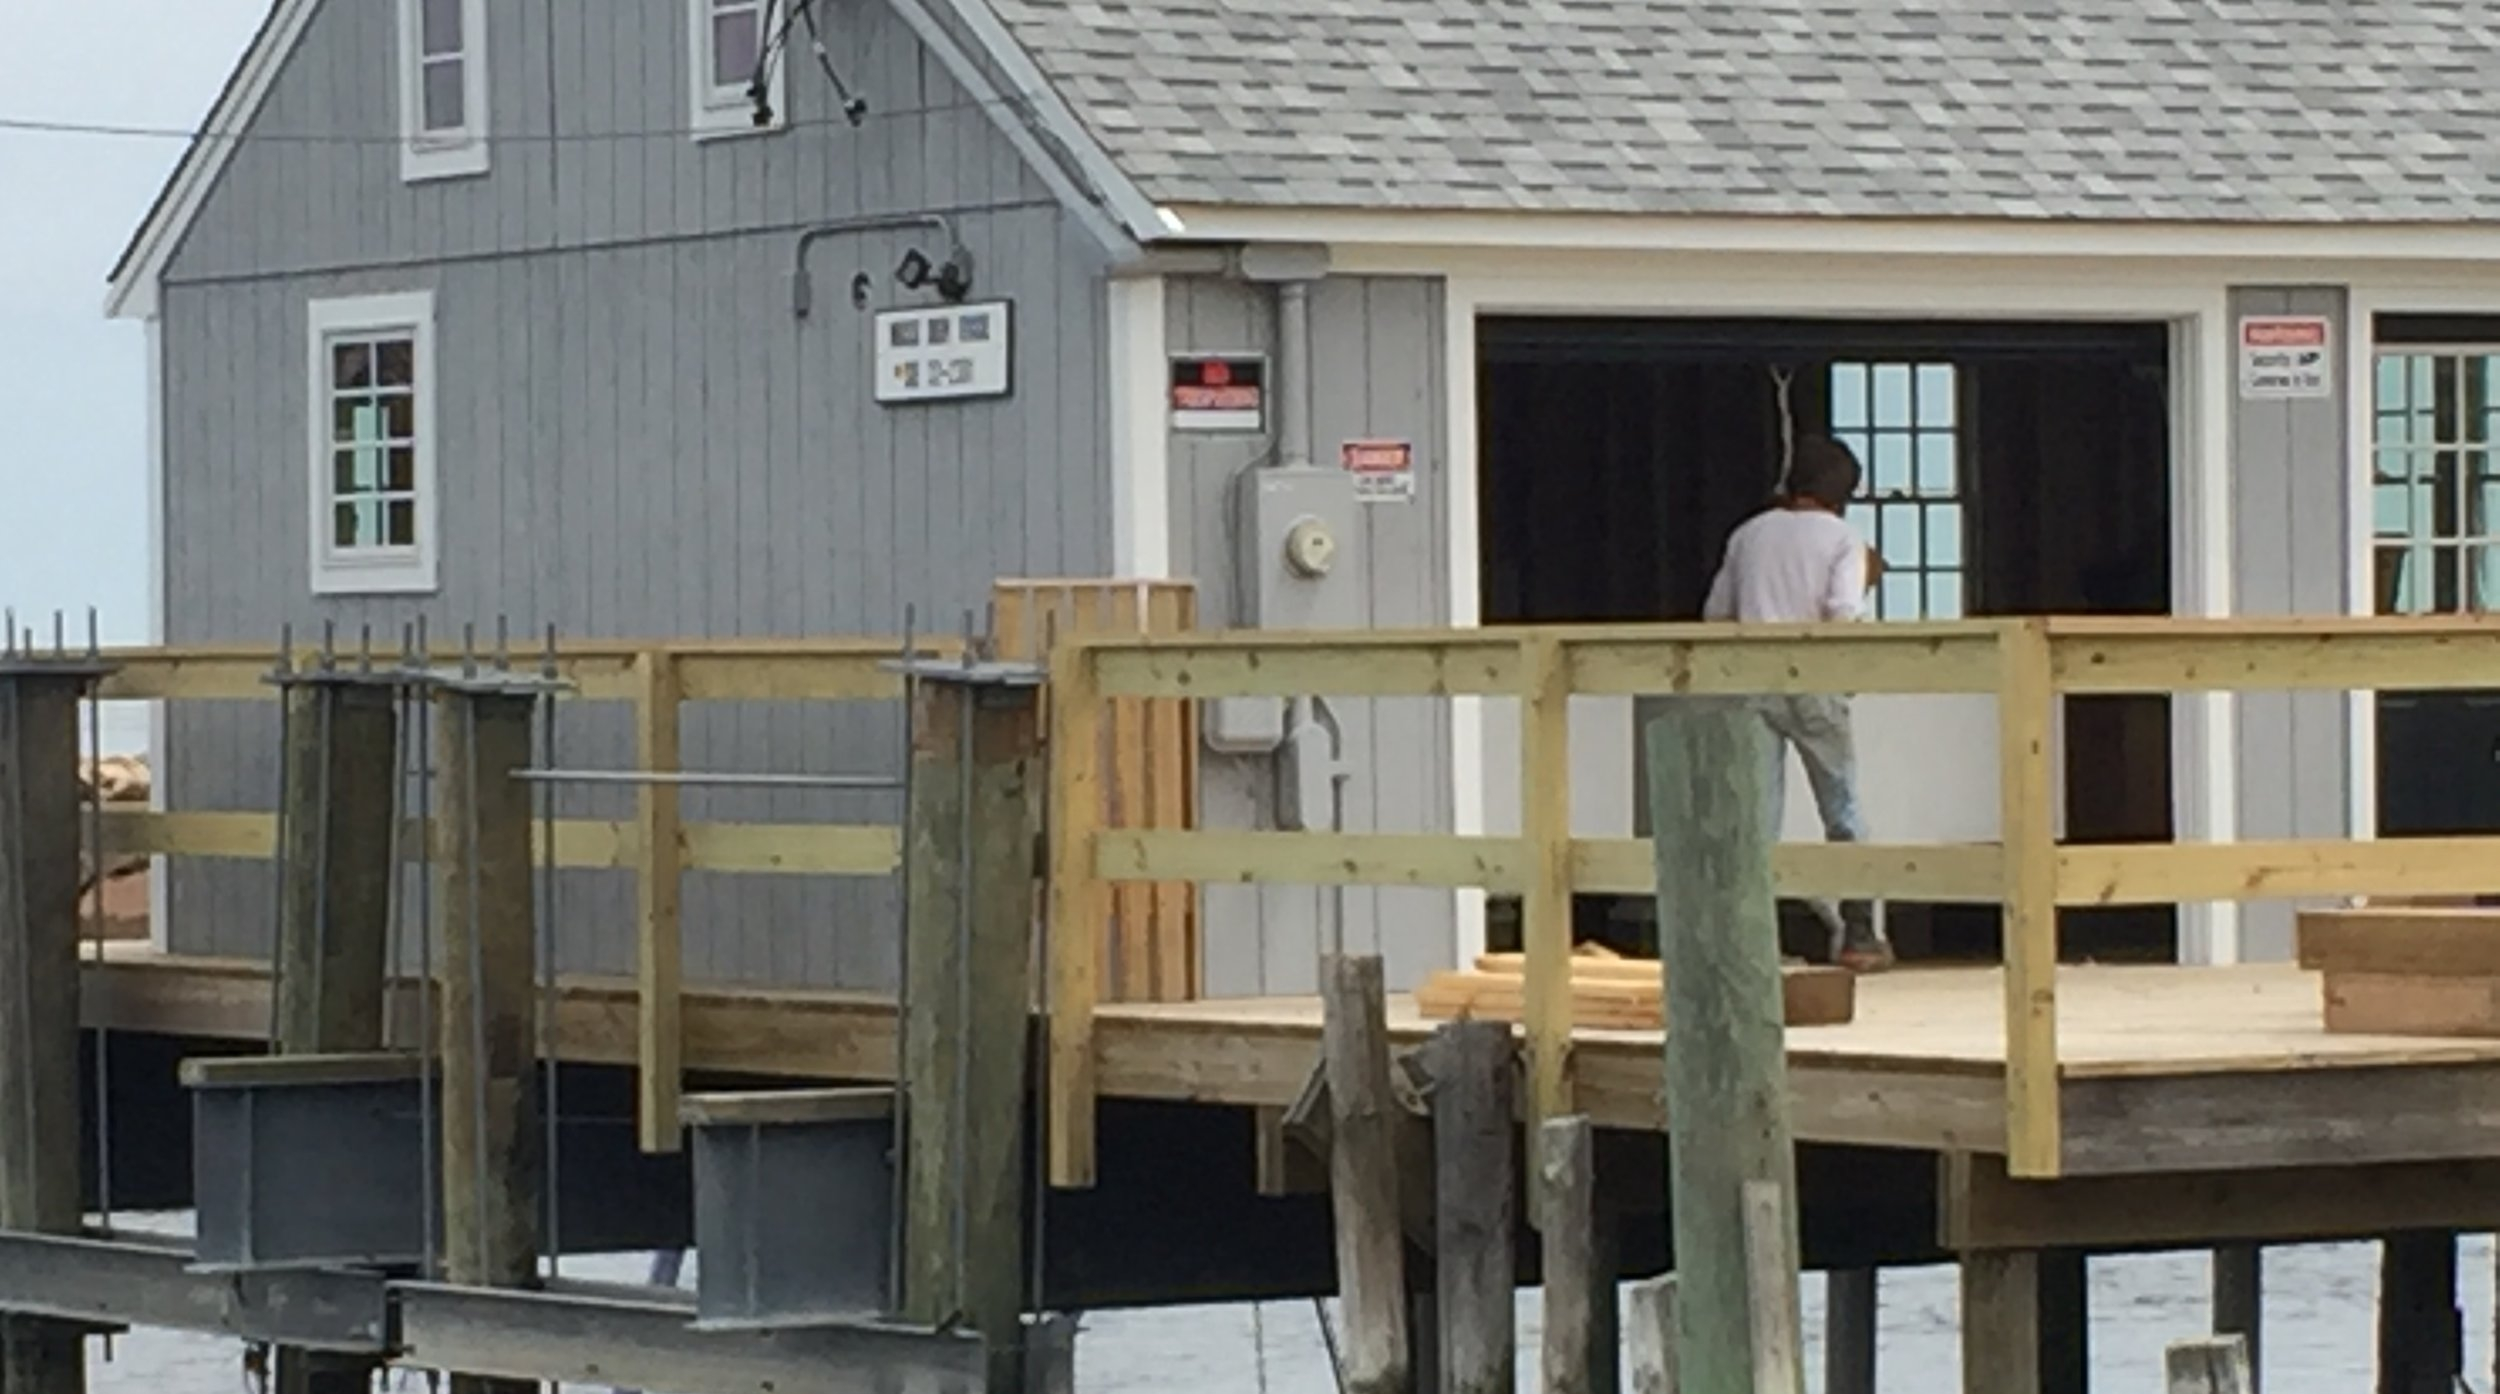 A.R.C.'s new shellfish nursery on the Herring River in Harwich, MA.